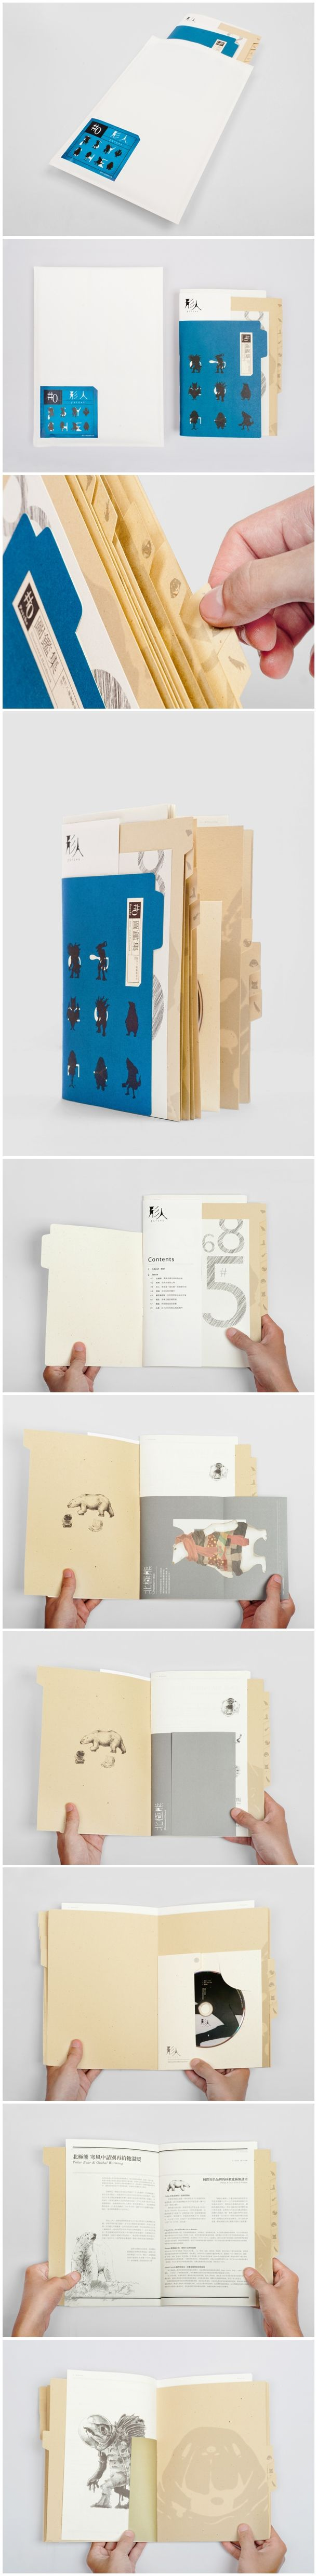 许琪图鉴 / oriental editorial design #experimental #books